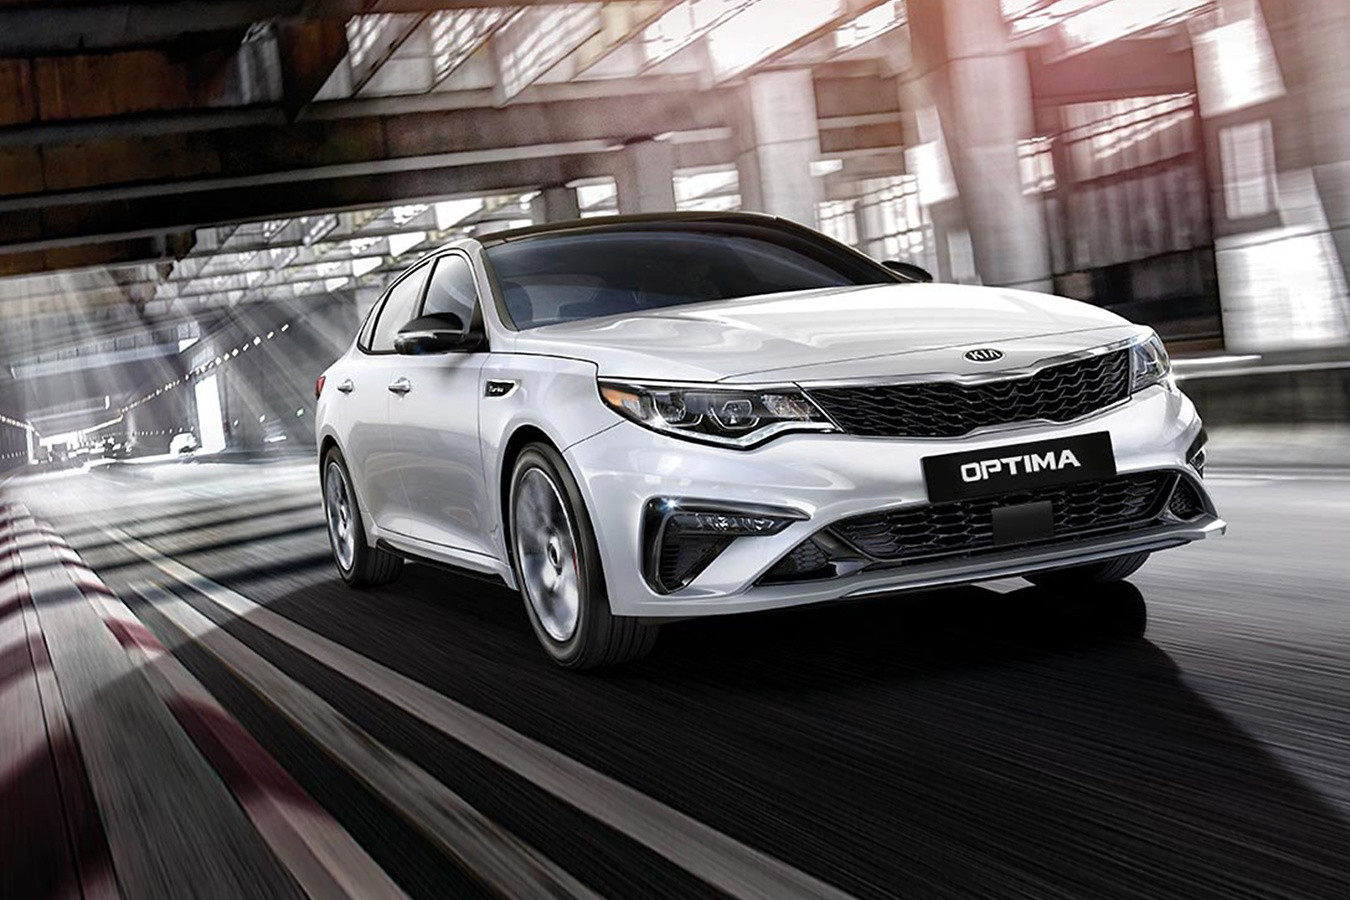 2020 Kia Optima Leasing in Huntington, NY